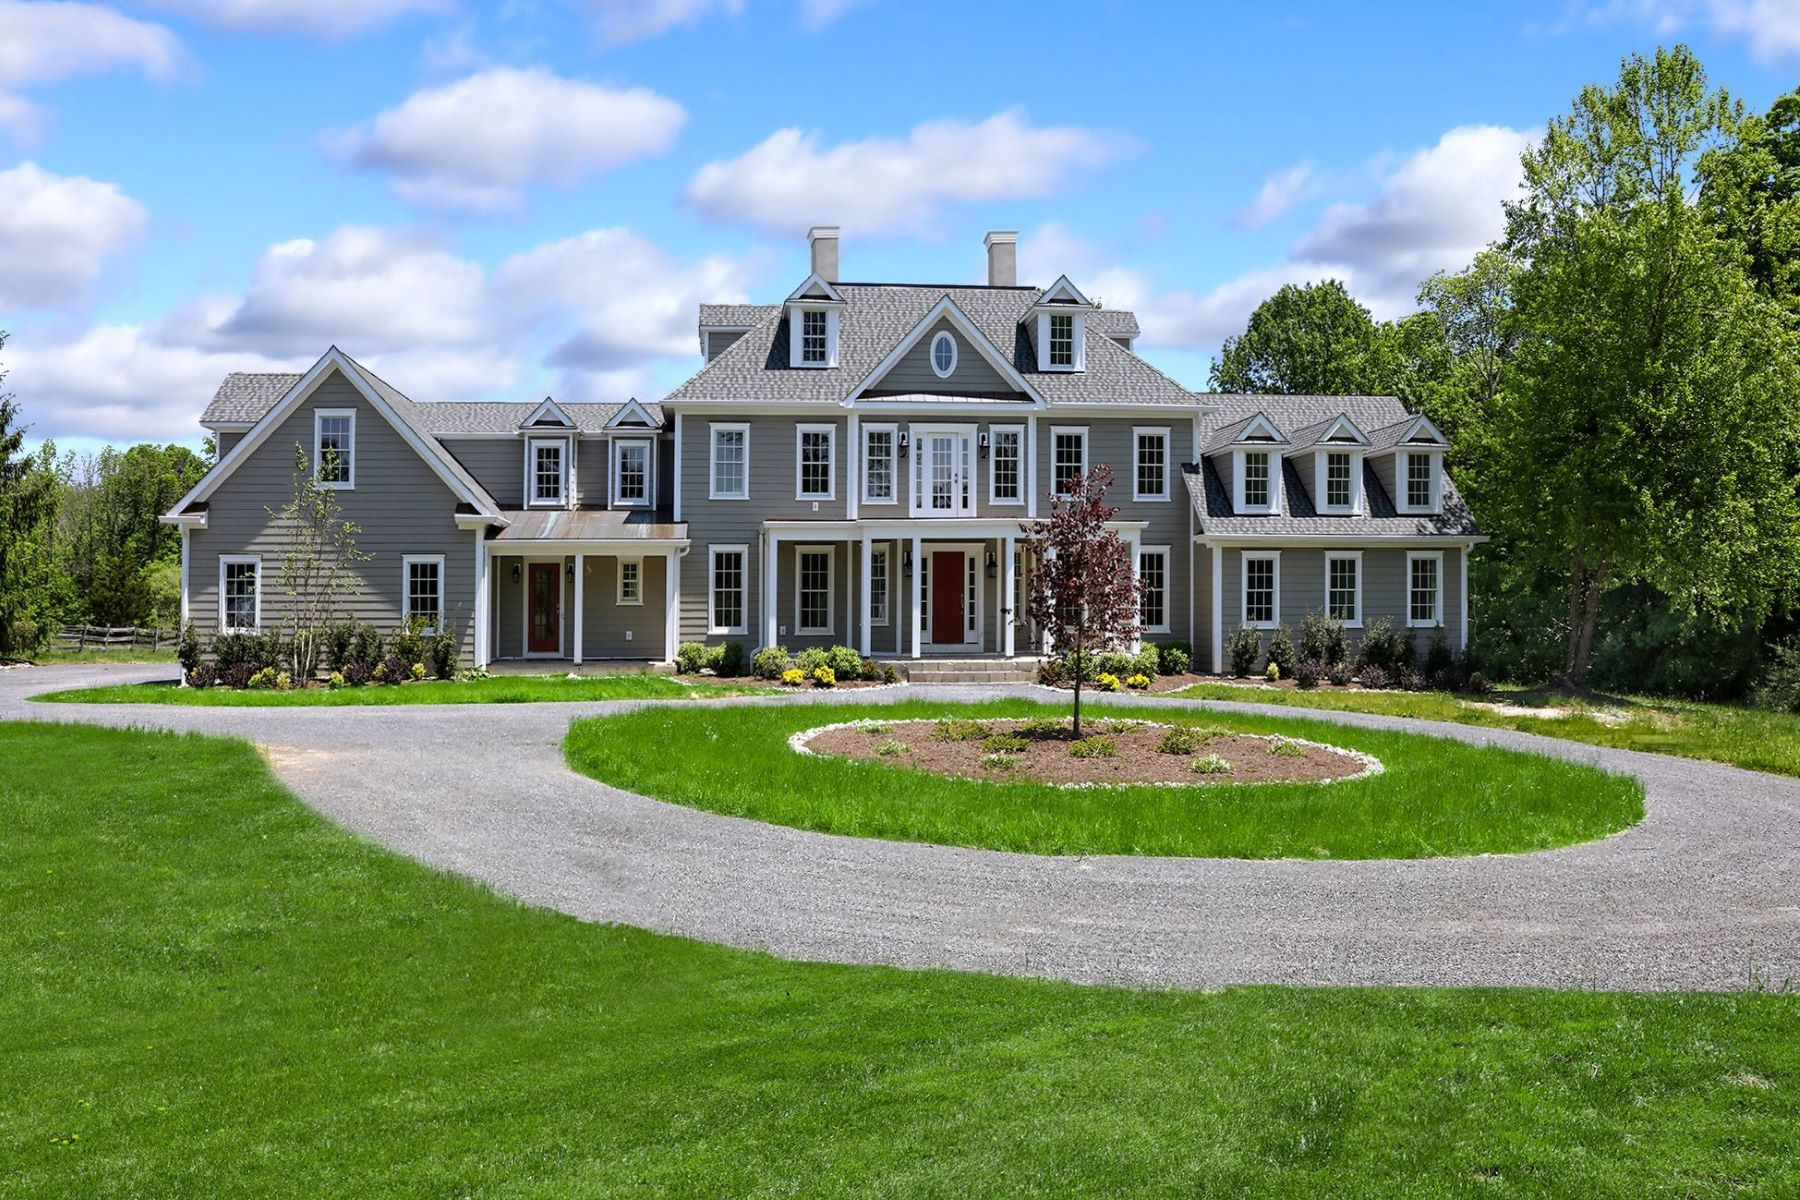 Single Family Homes for Sale at Every Amenity in this Spectacular Estate-Style Home 114 Federal Twist Road, Stockton, New Jersey 08559 United States